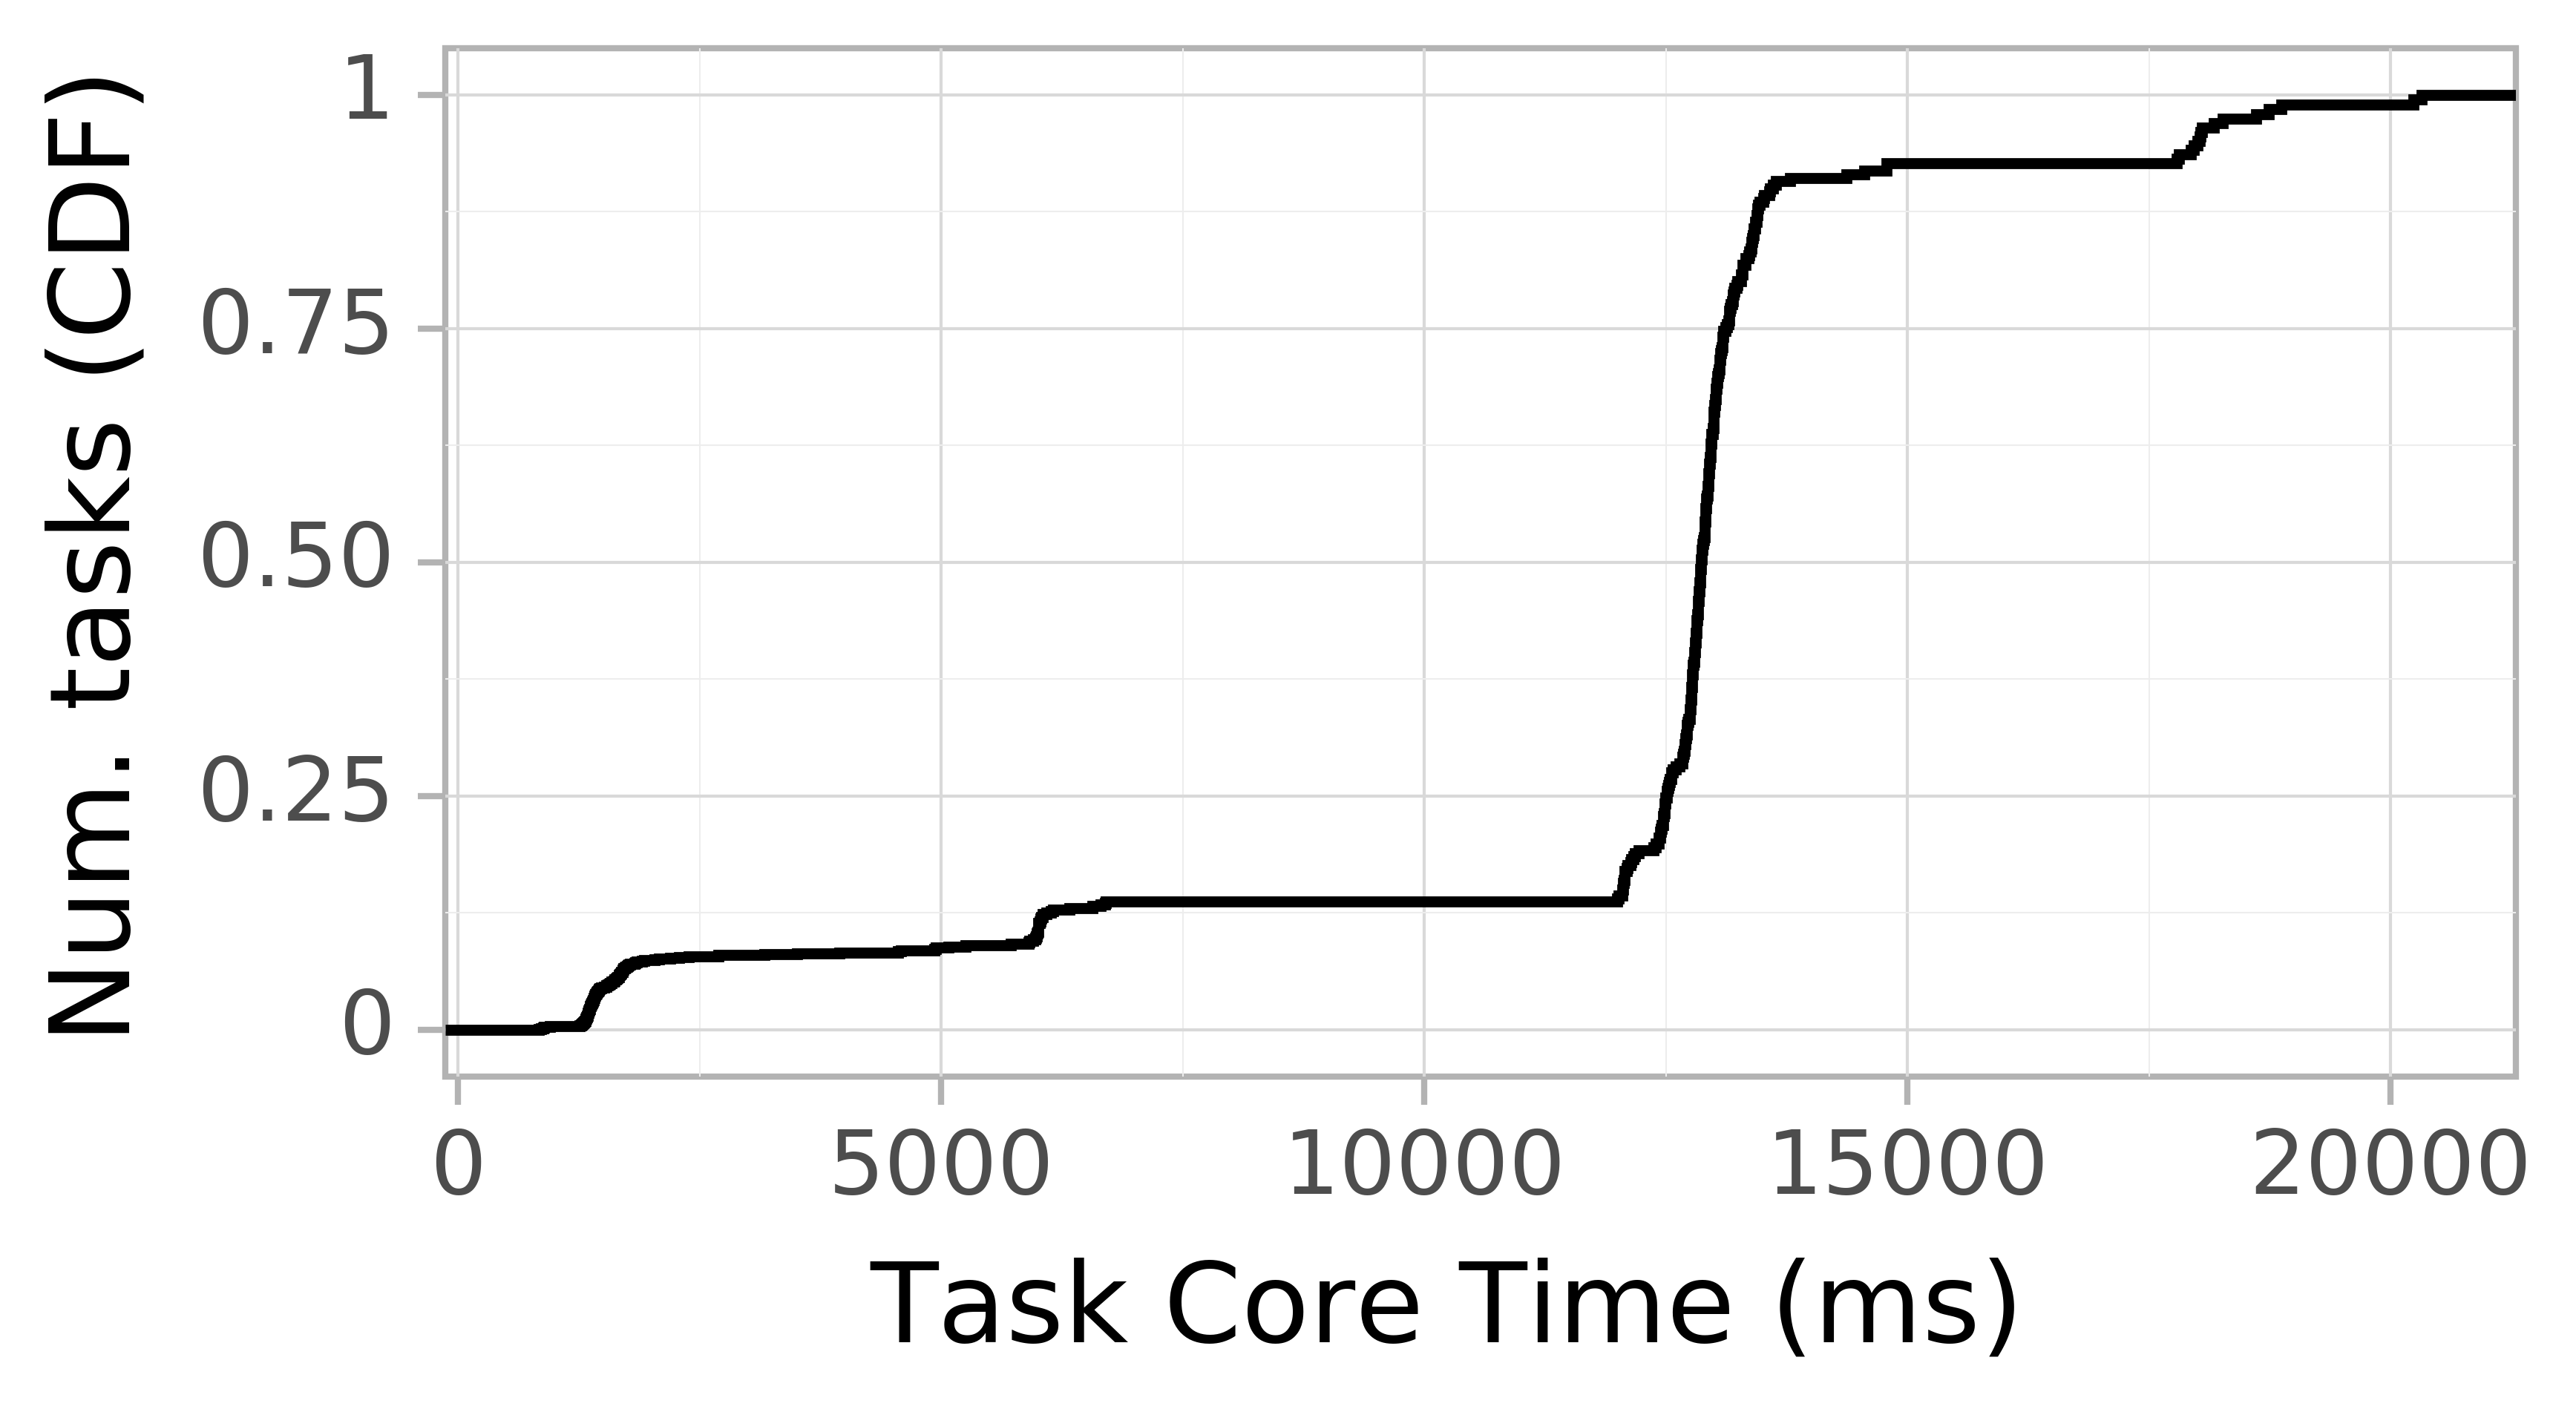 task resource time CDF graph for the askalon-new_ee11 trace.